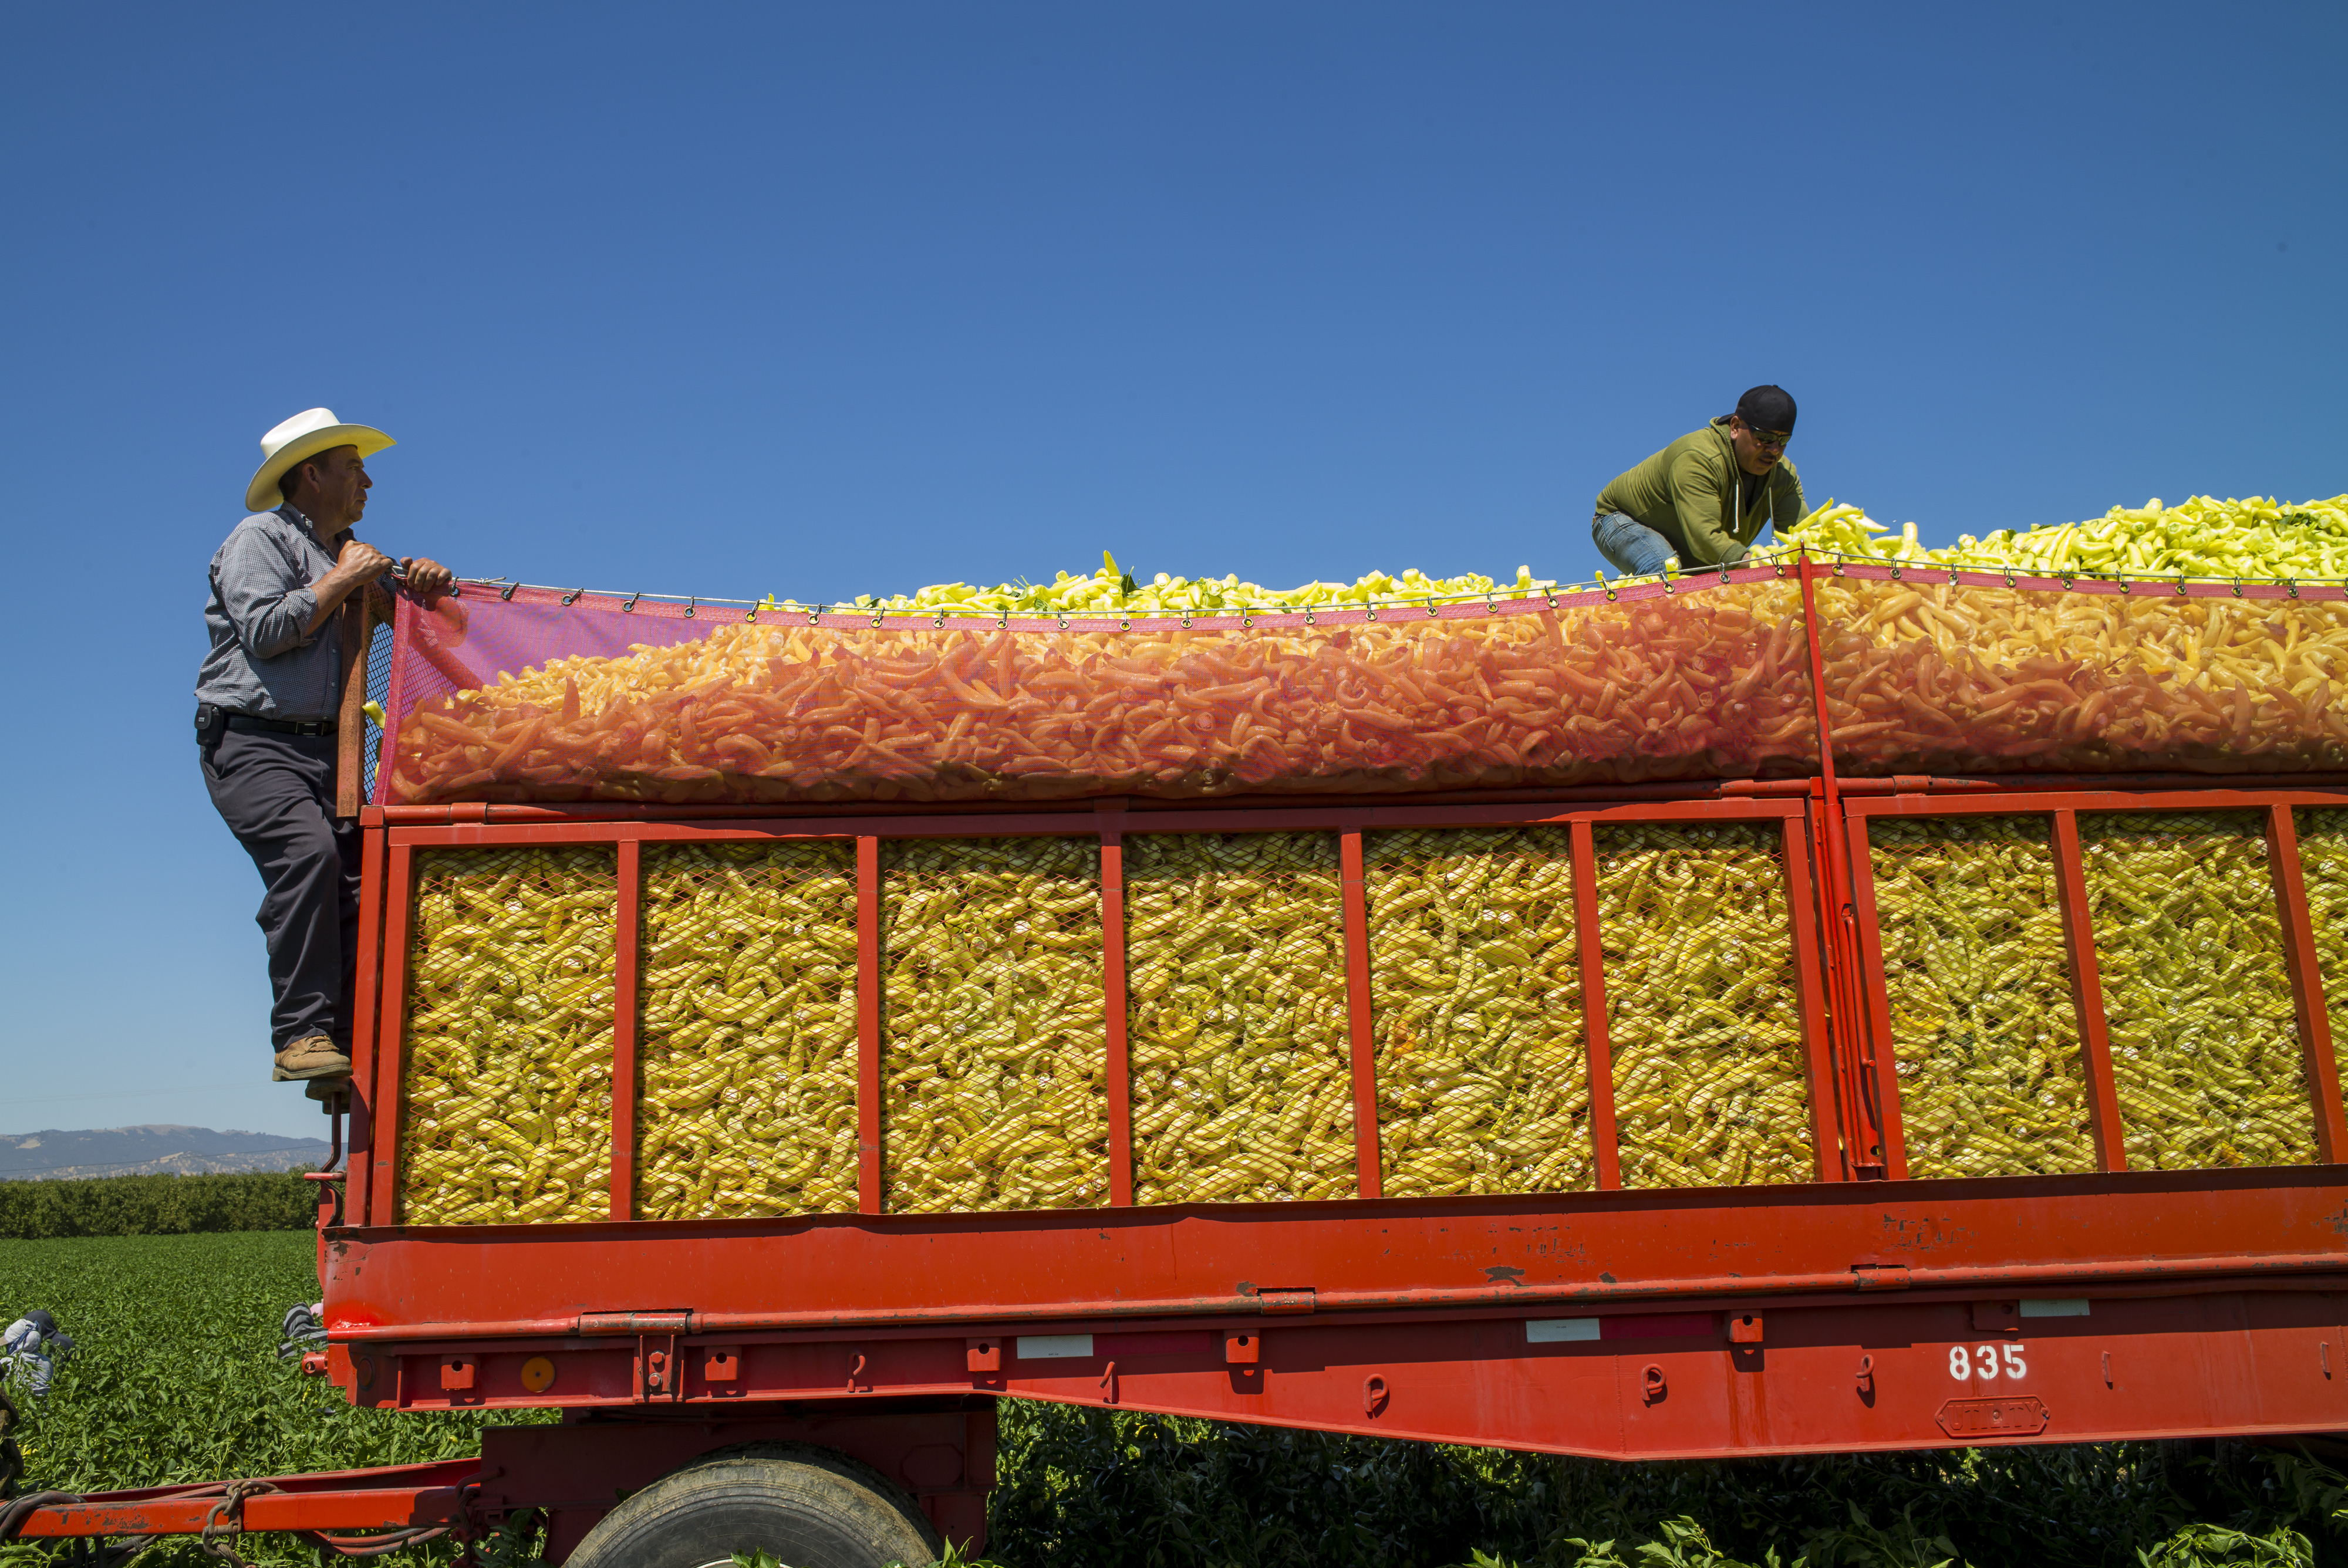 Workers arrange peppers as they harvested peppers on to a truck at the Uesugi Farm in Byron, California, U.S., on Thursday, July 16, 2015.